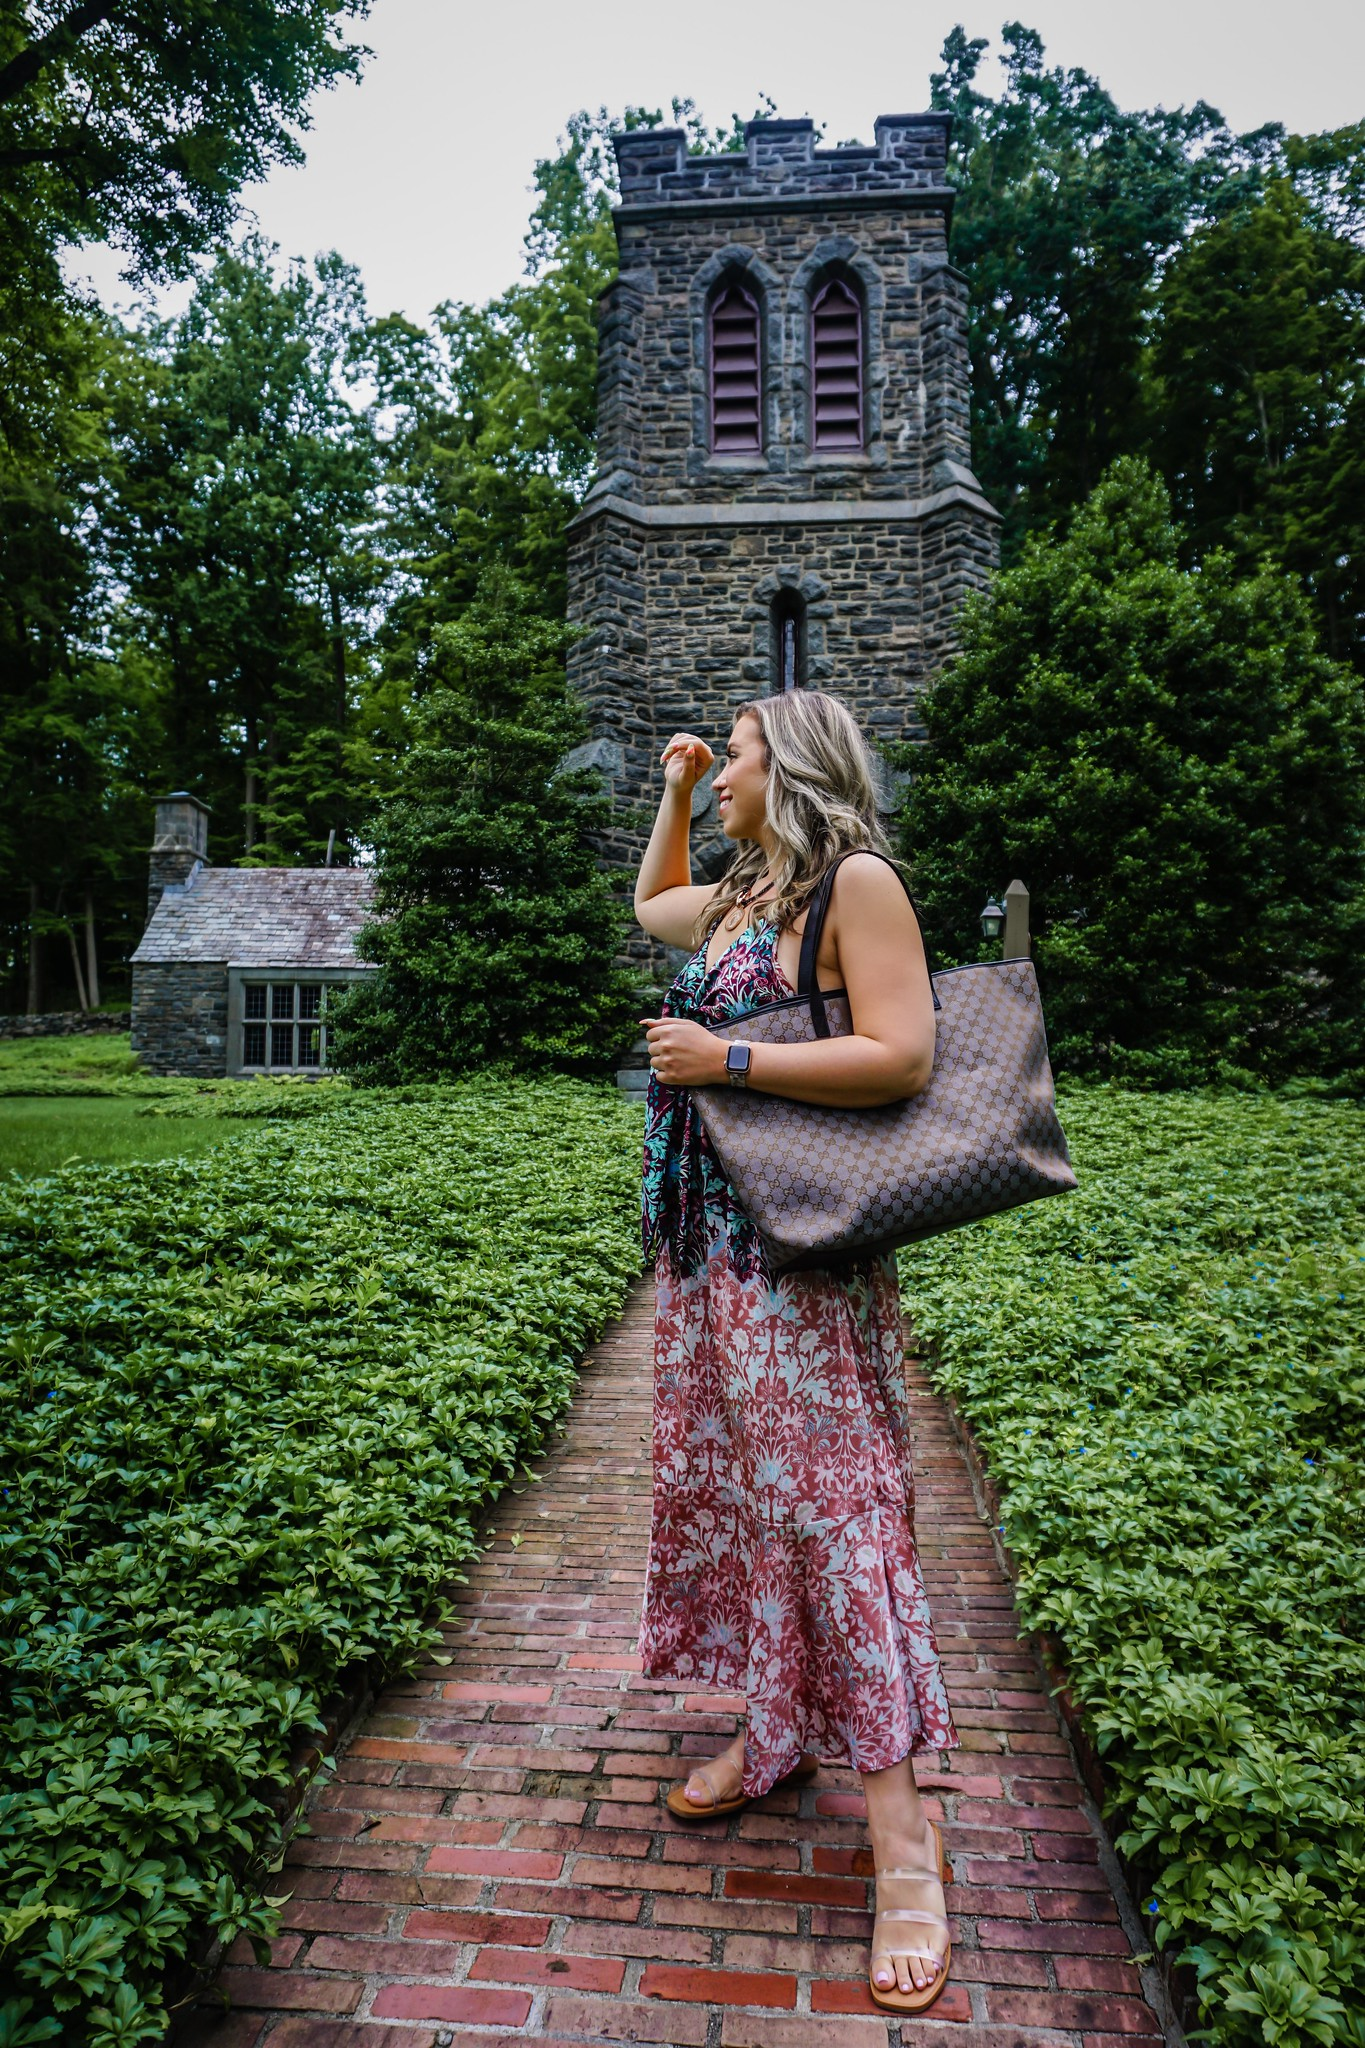 3 Ways to Wear Pre-Loved Designer Bag | Gucci Canvas Tote Bag | LXRandCo | LXR Vintage Luxury Retailer | Vintage Designer Bag Review | Where to Buy Preloved Designer Bags | Free People Metallic Dress Outfit | Summer Outfit Ideas